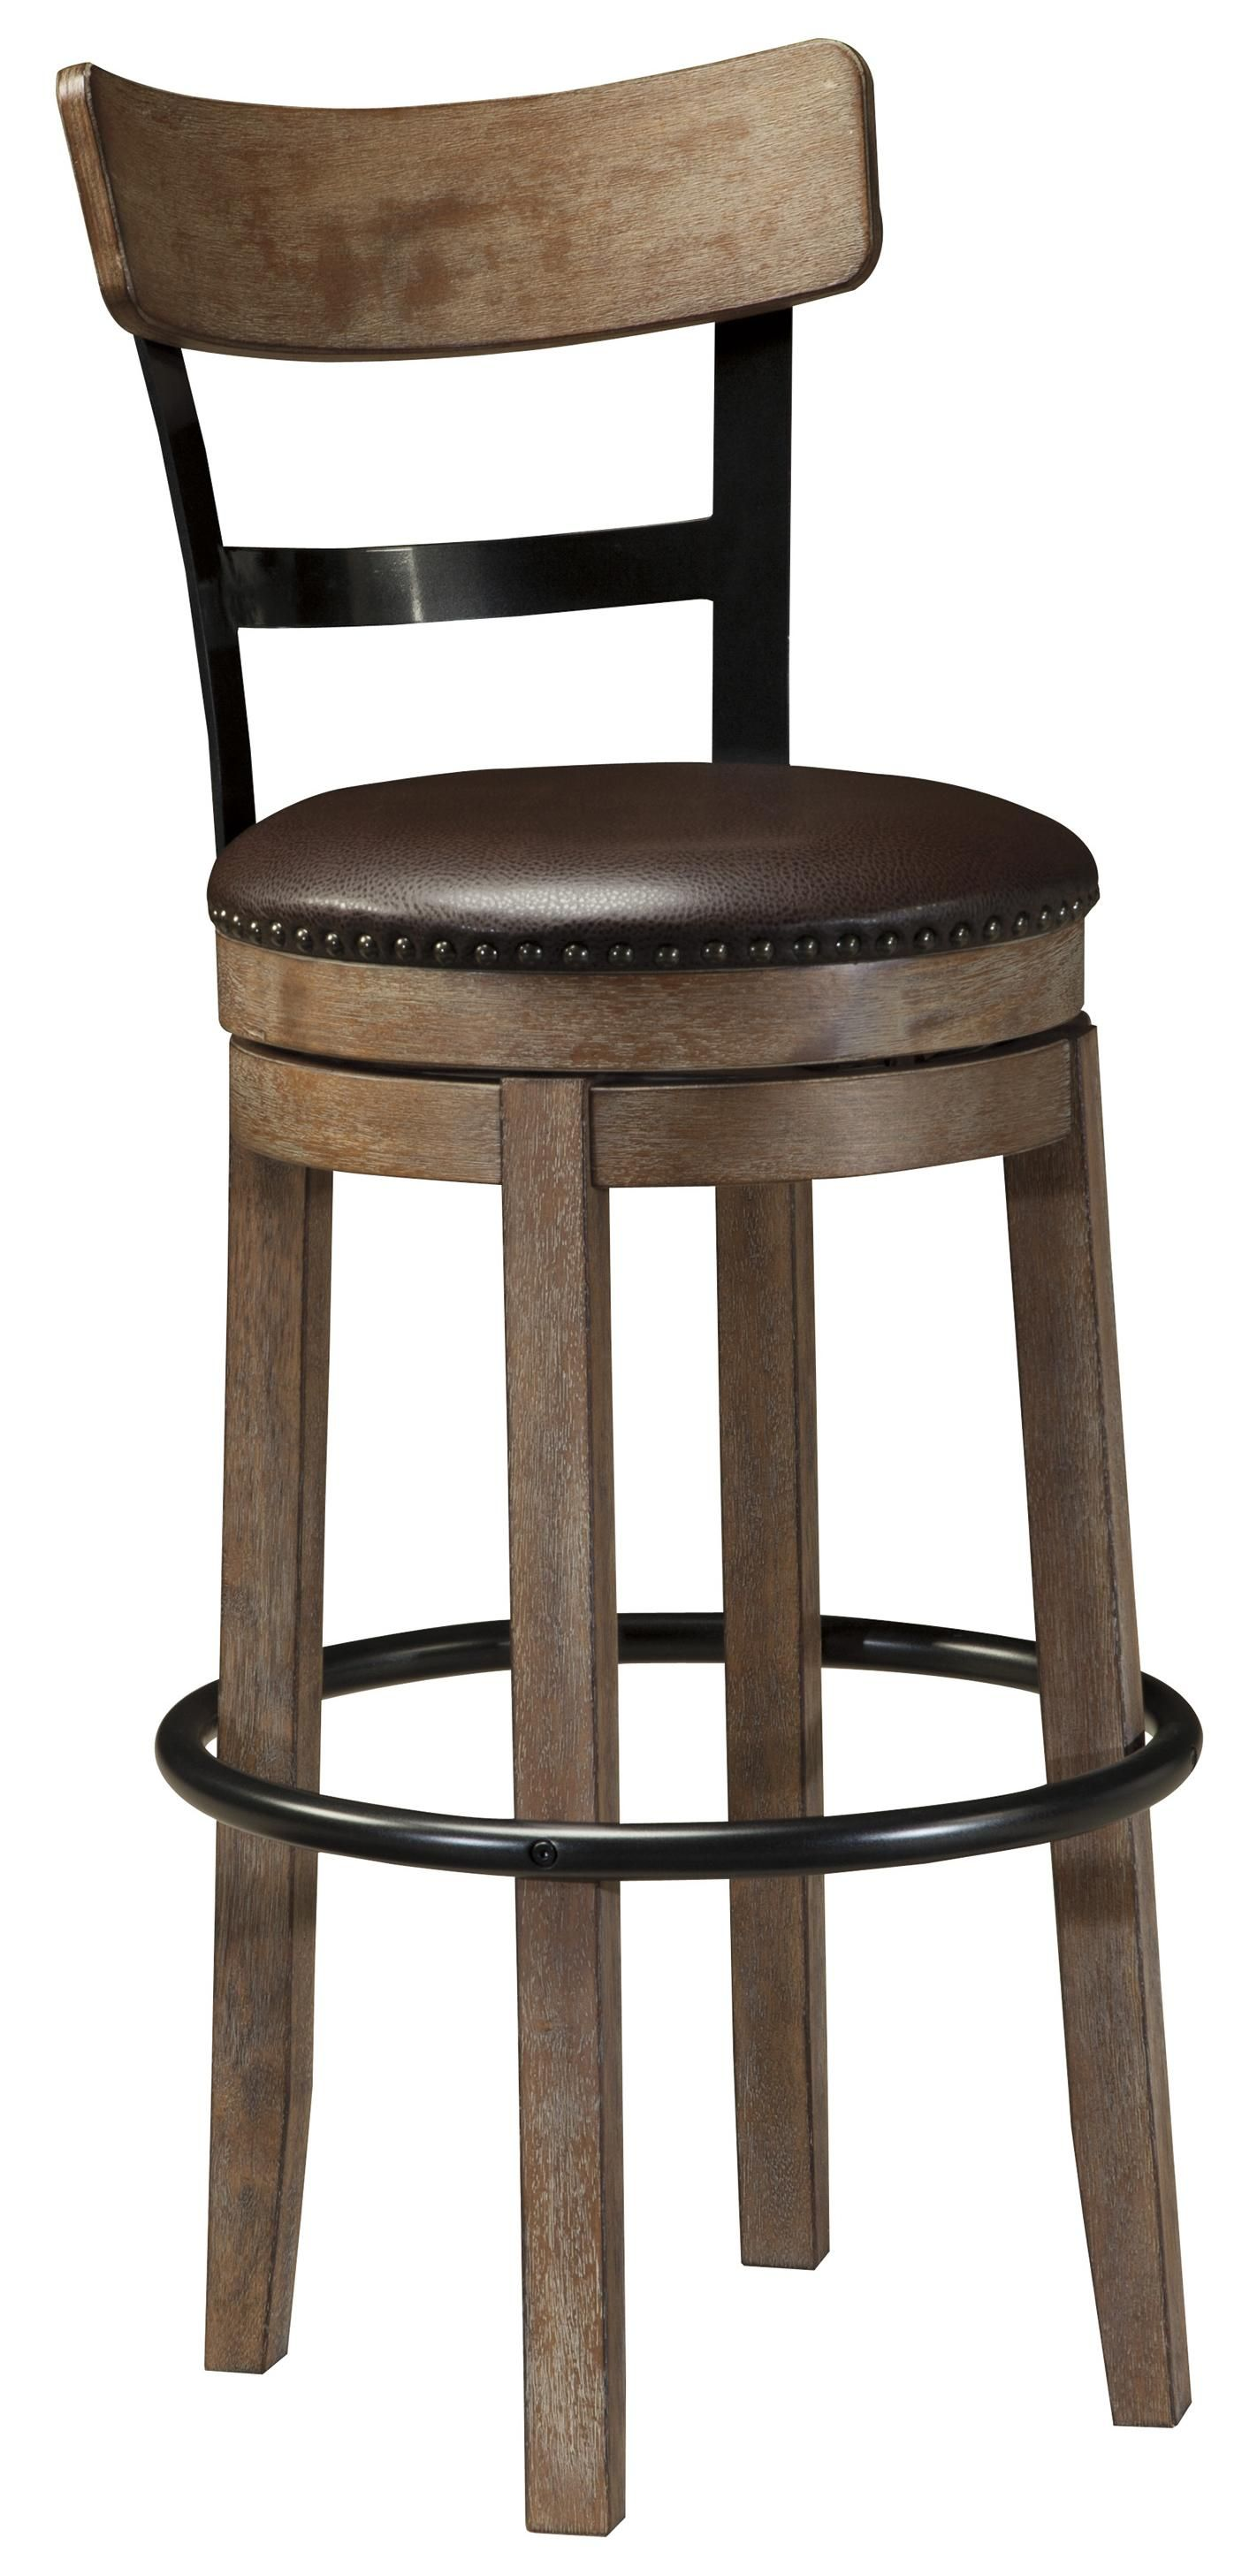 Pinnadel Tall Upholstered Swivel Barstool with Wood & Metal